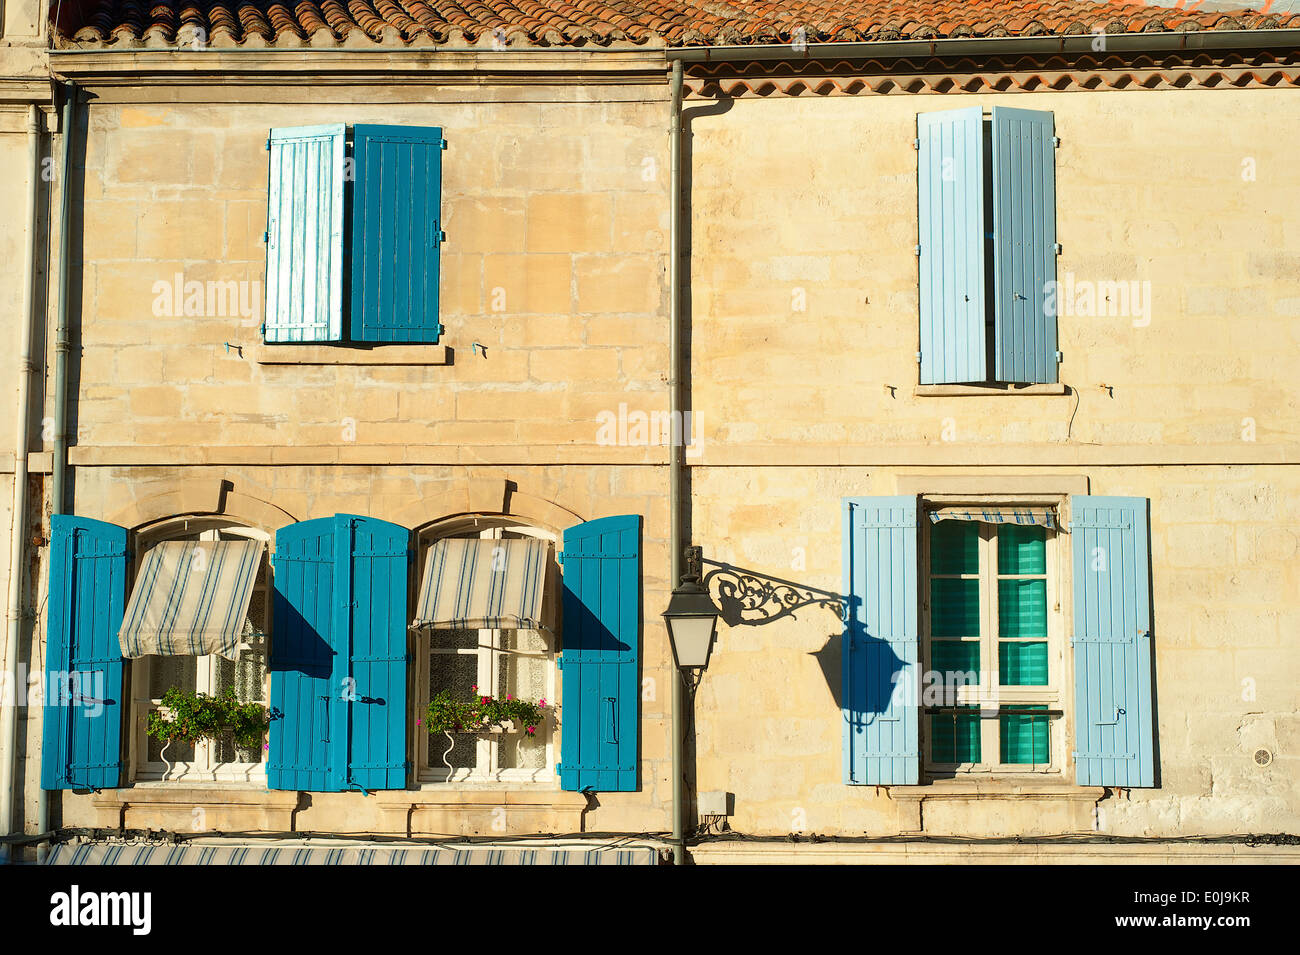 Typical building wall and windows at sunset in Arles, France - Stock Image